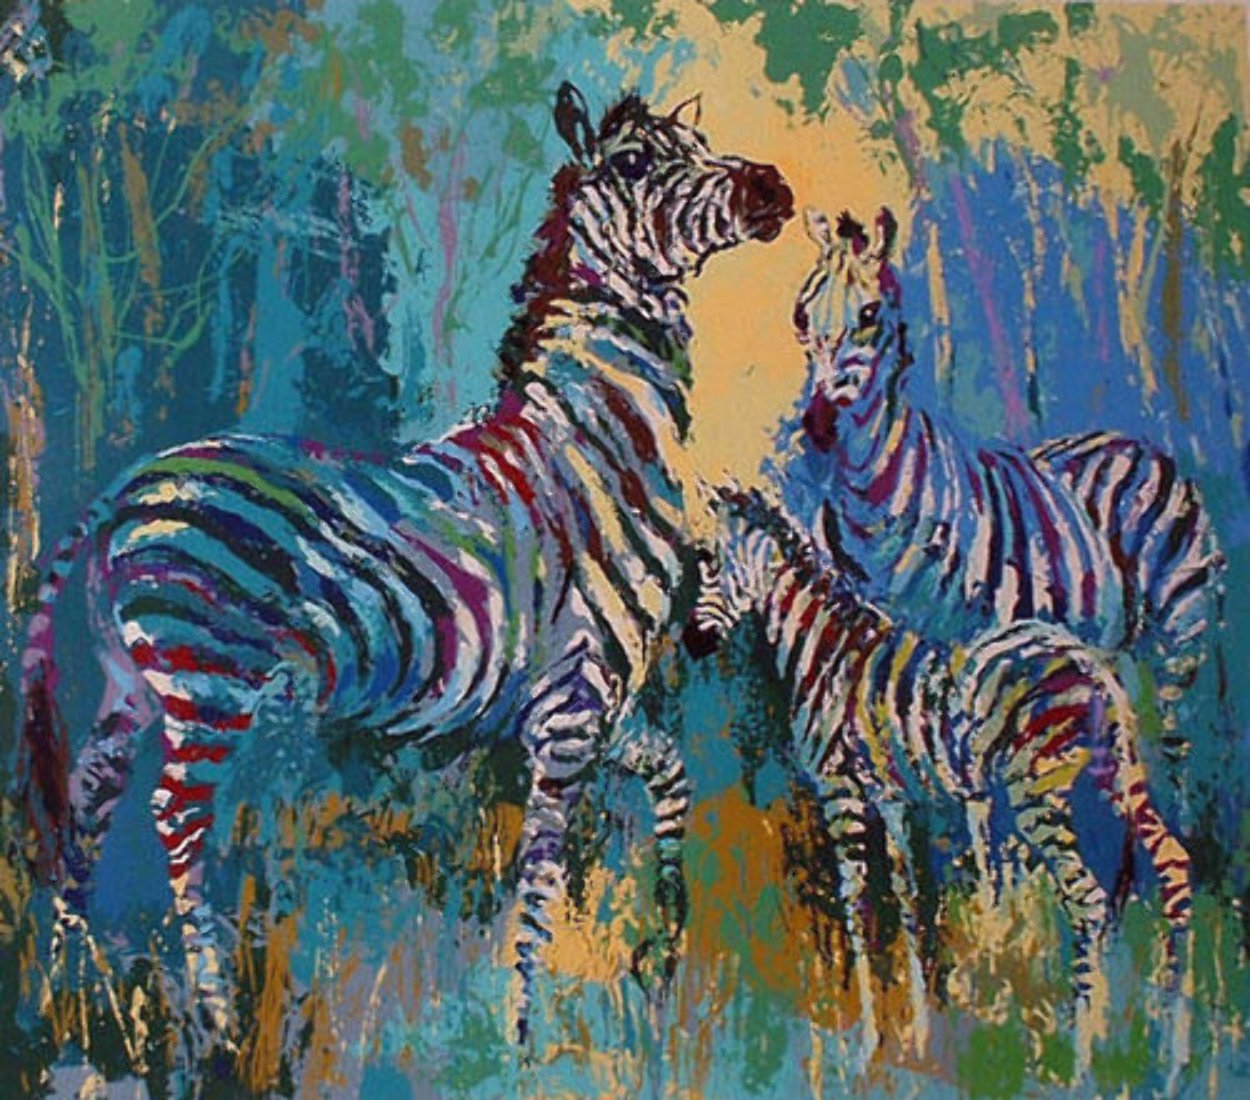 Zebra Family AP 1978 Limited Edition Print by LeRoy Neiman